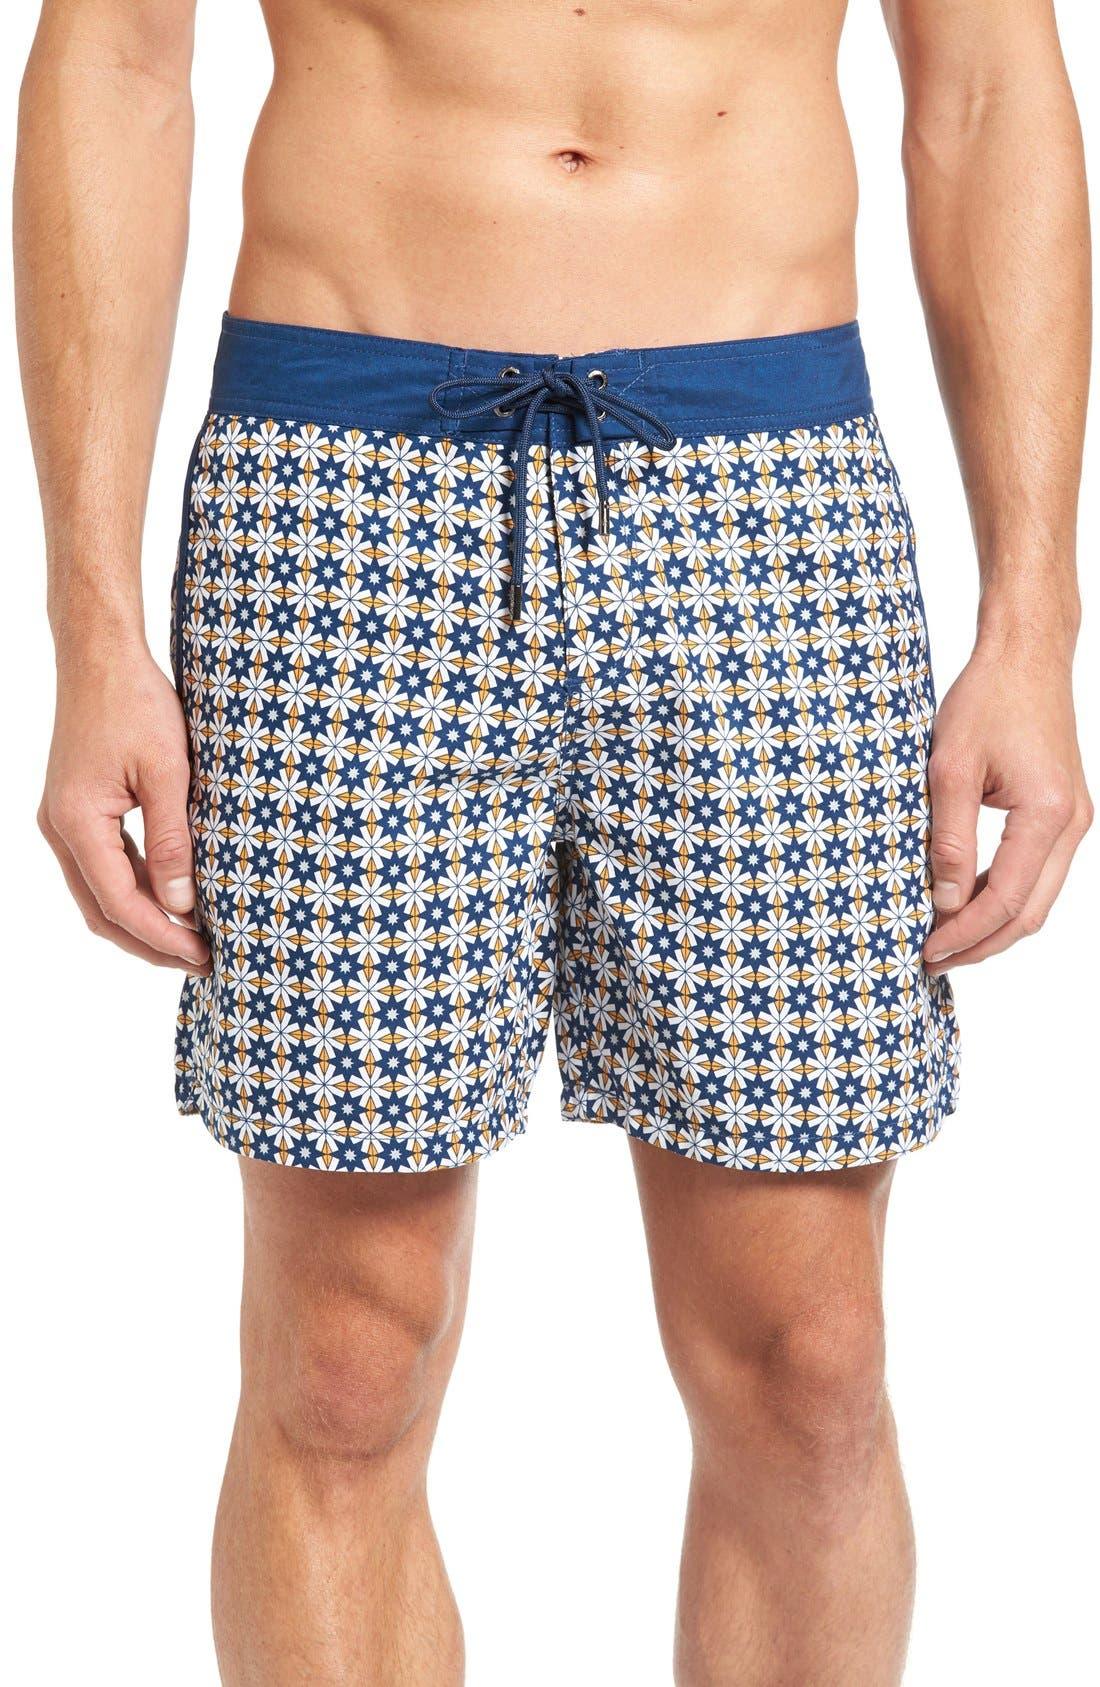 Star Tile Print Board Shorts,                             Main thumbnail 1, color,                             Orange